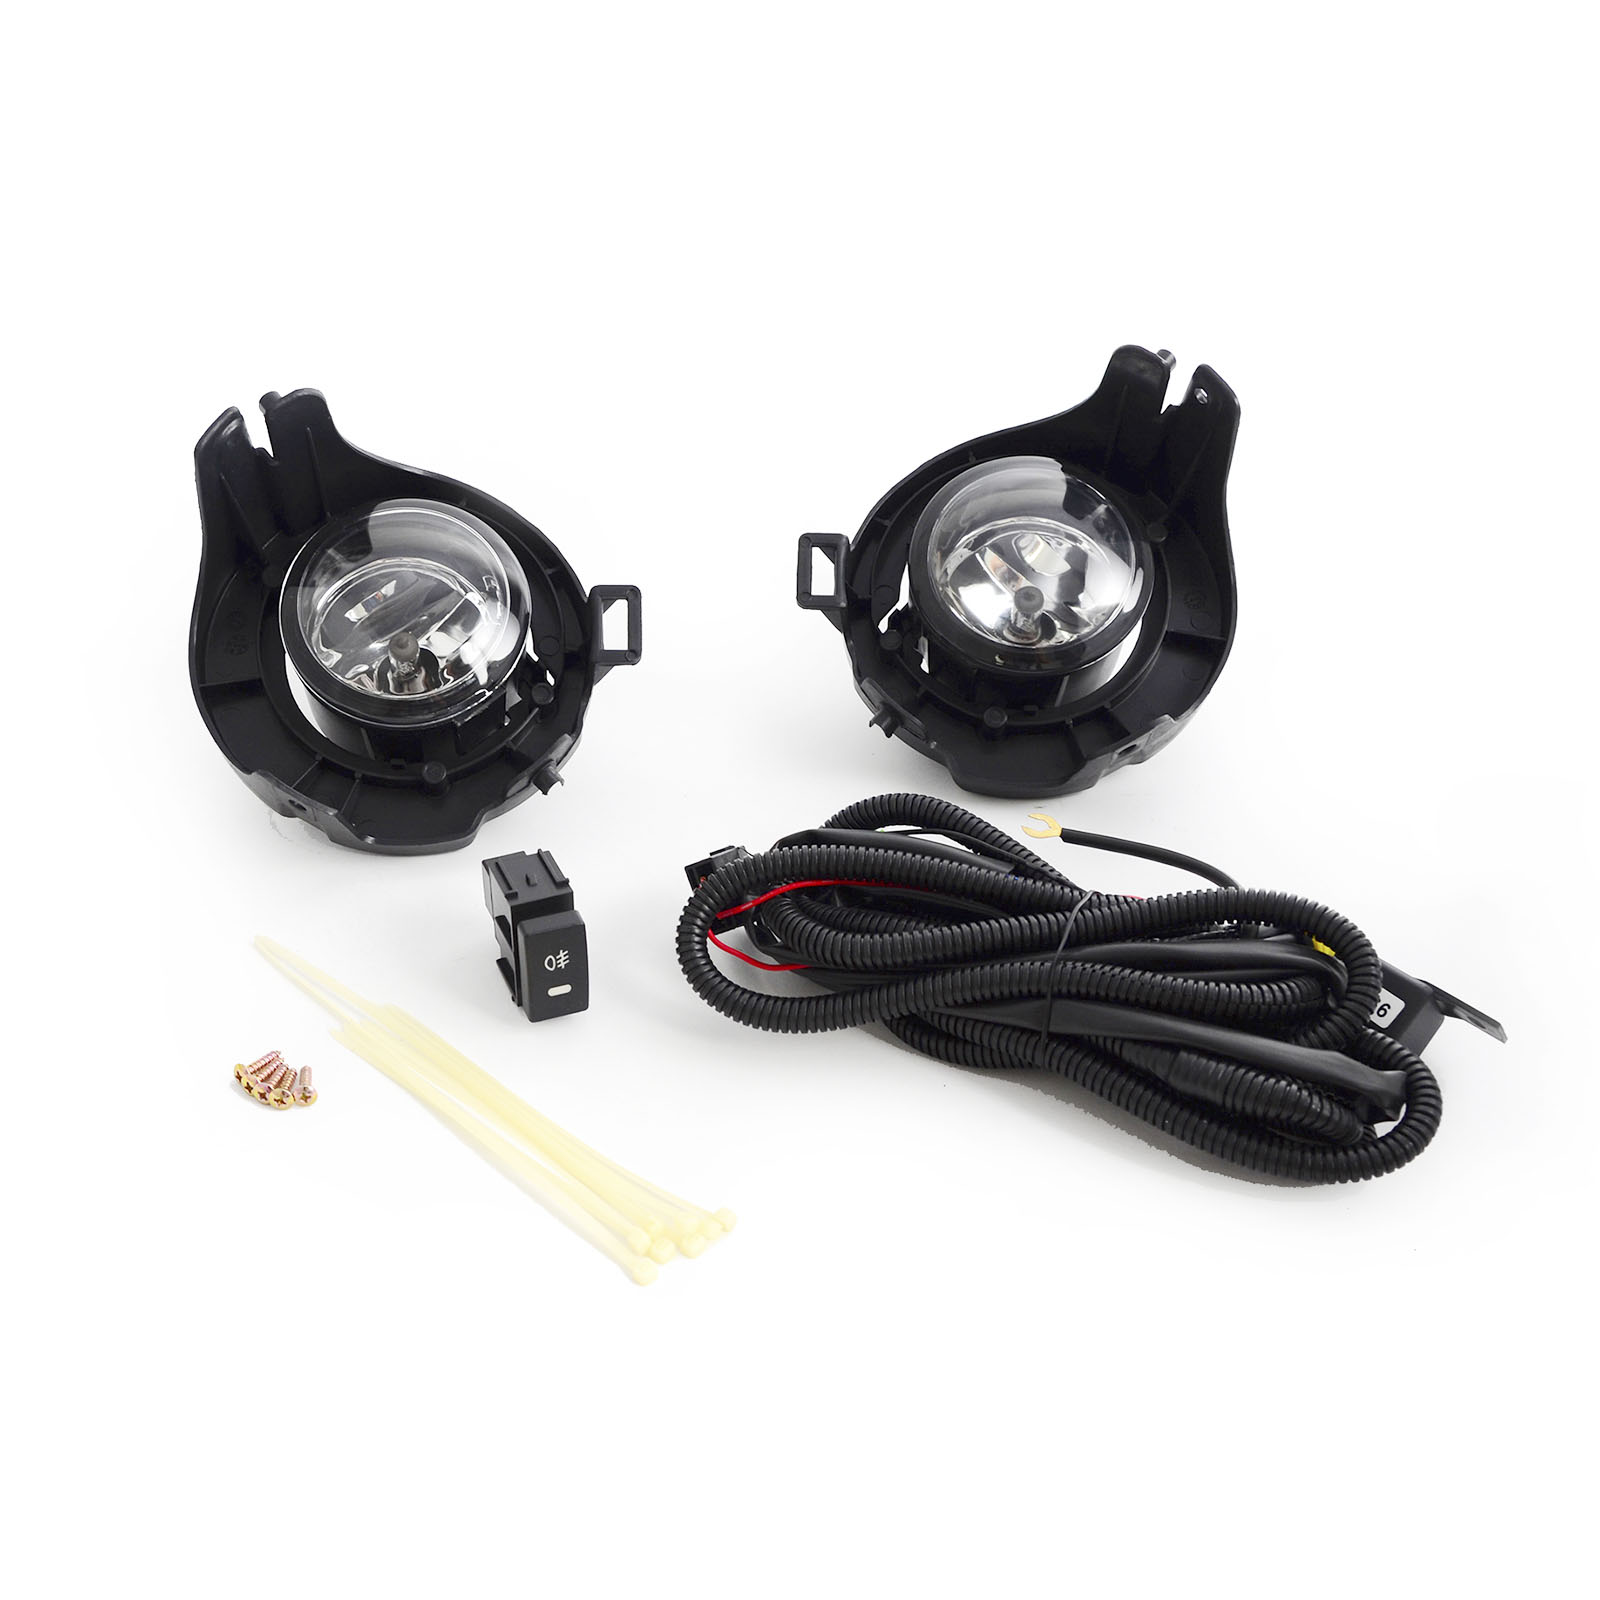 For Nissan Navara D40 2005-2014 Driving Fog Lights Lamps Complete Kit H11-12V 55W for nlssan navara d40